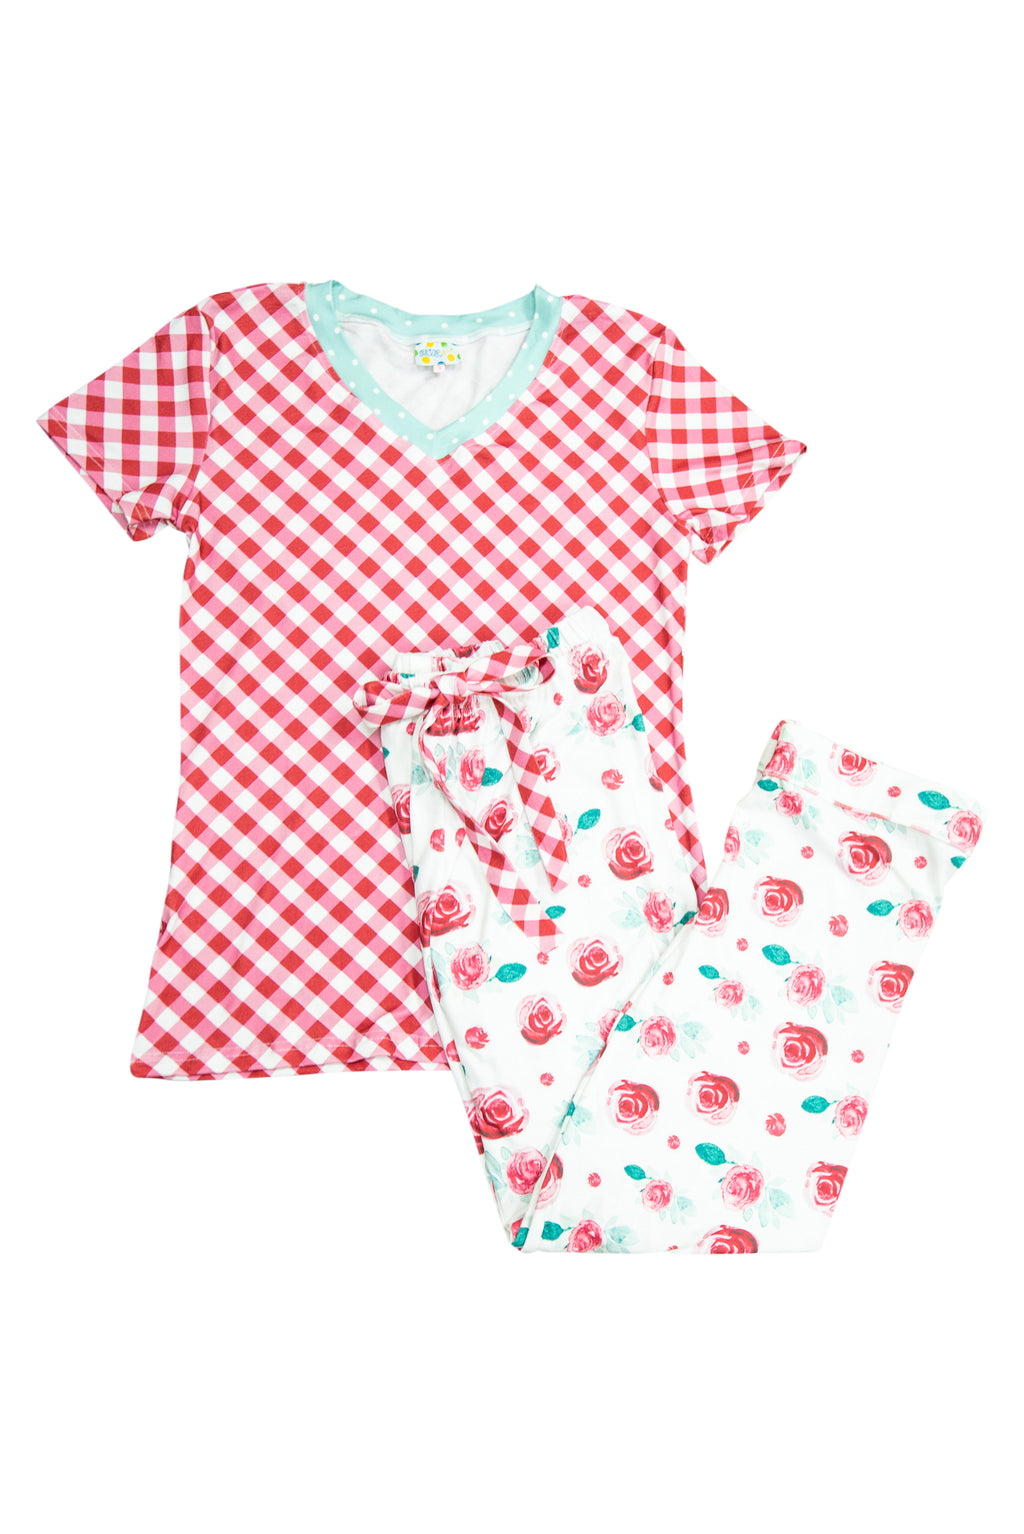 Mom's Winter Floral PJ Pant Set